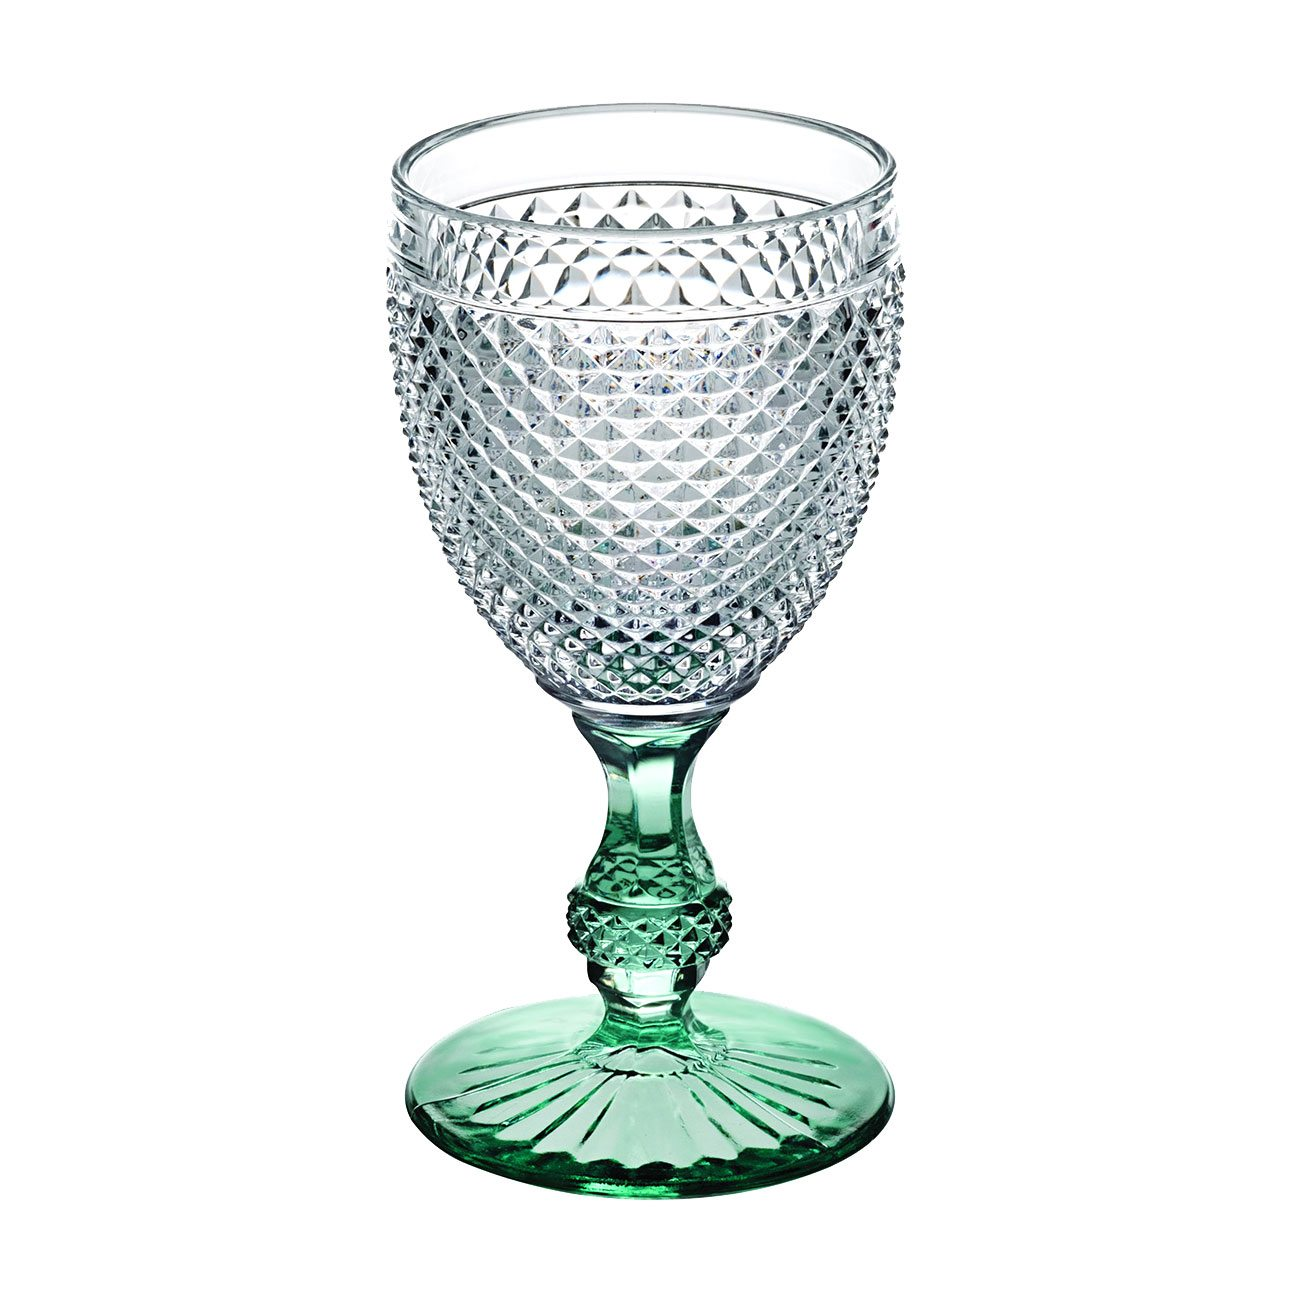 Vista Alegre Bicos Bicolor Goblet with Mint Stem